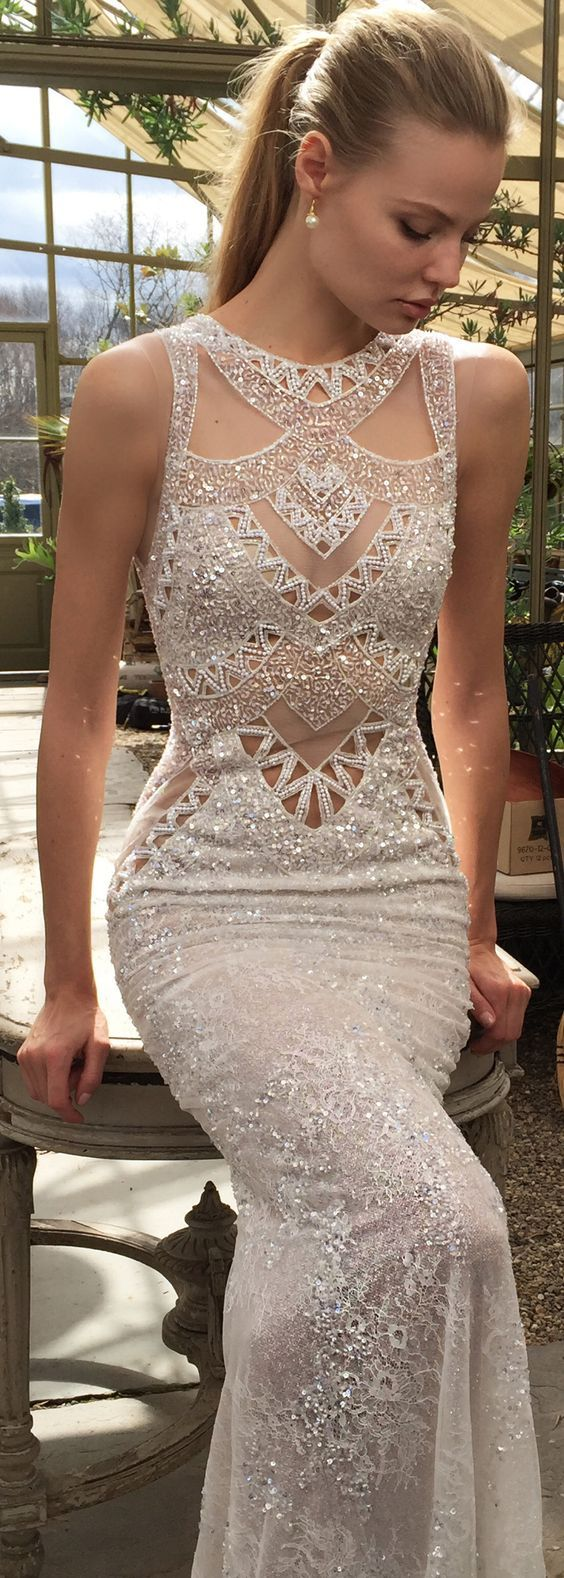 The geometric detailing in this @bertabridal wedding dress makes it both elegantly modern, with a touch of art deco - don't you think?